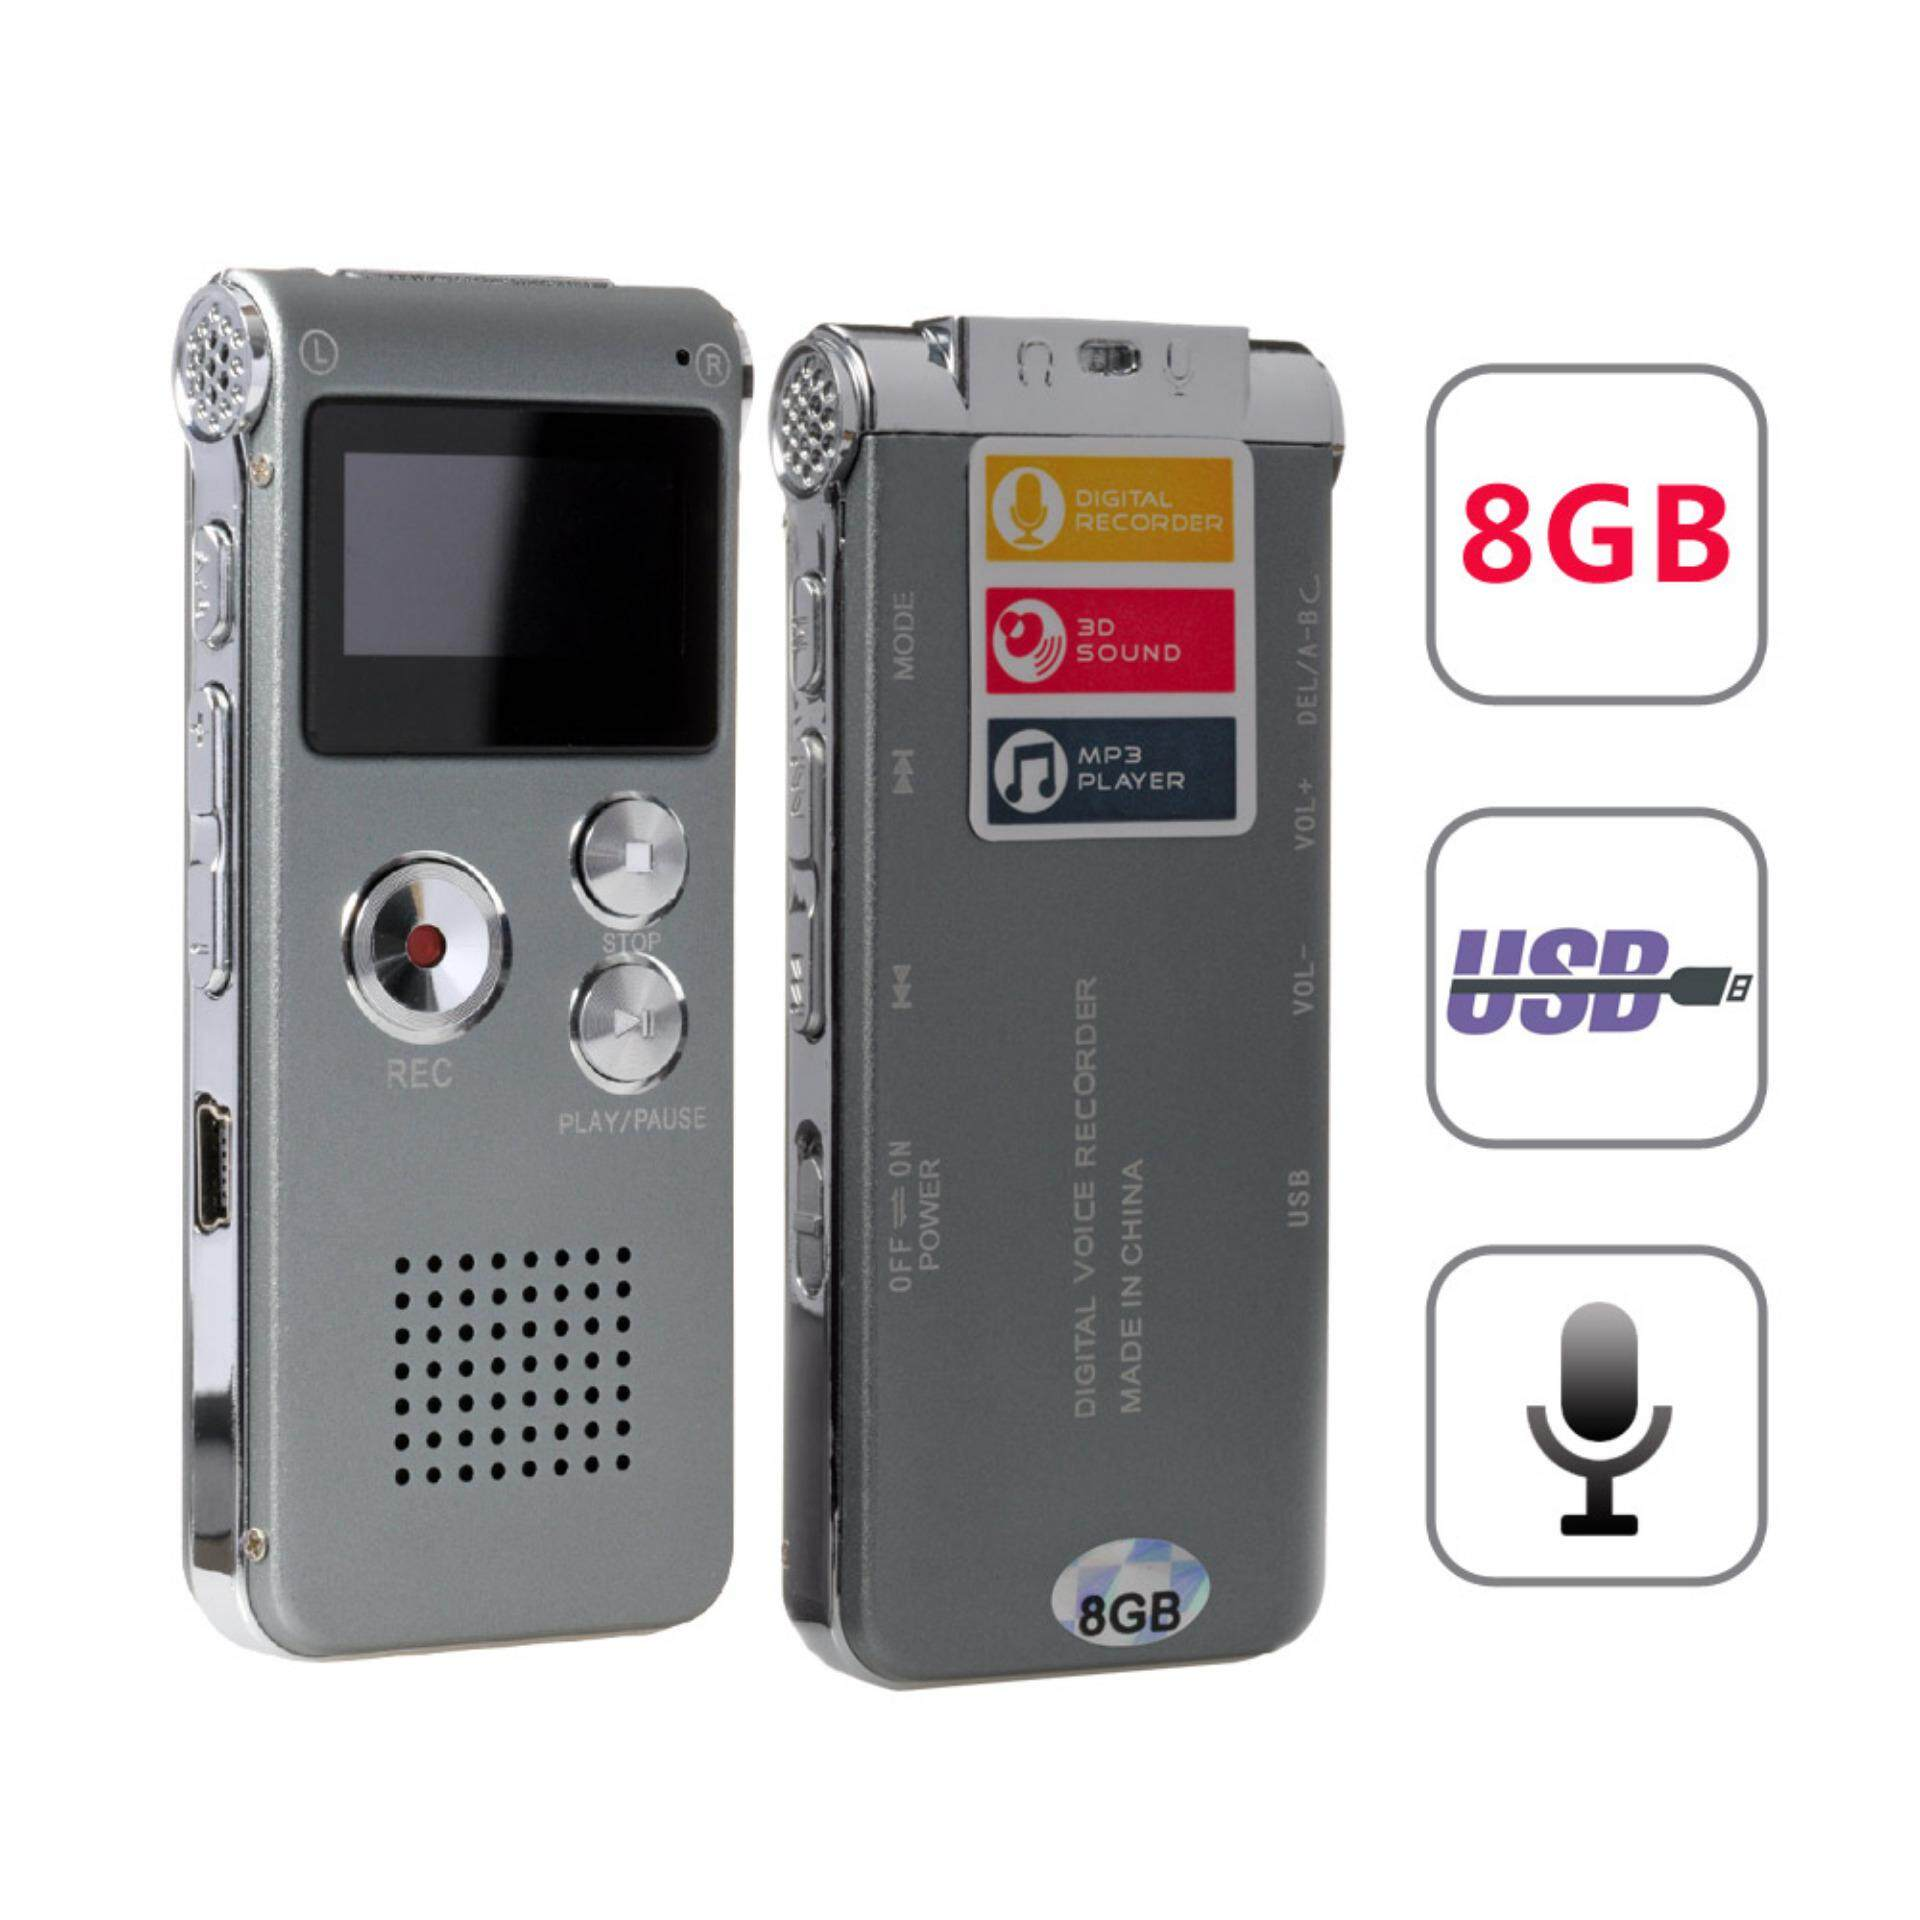 ZKYT 8GB Voice Sound Recorder USB LCD Rechargeable Player Recorder MP3